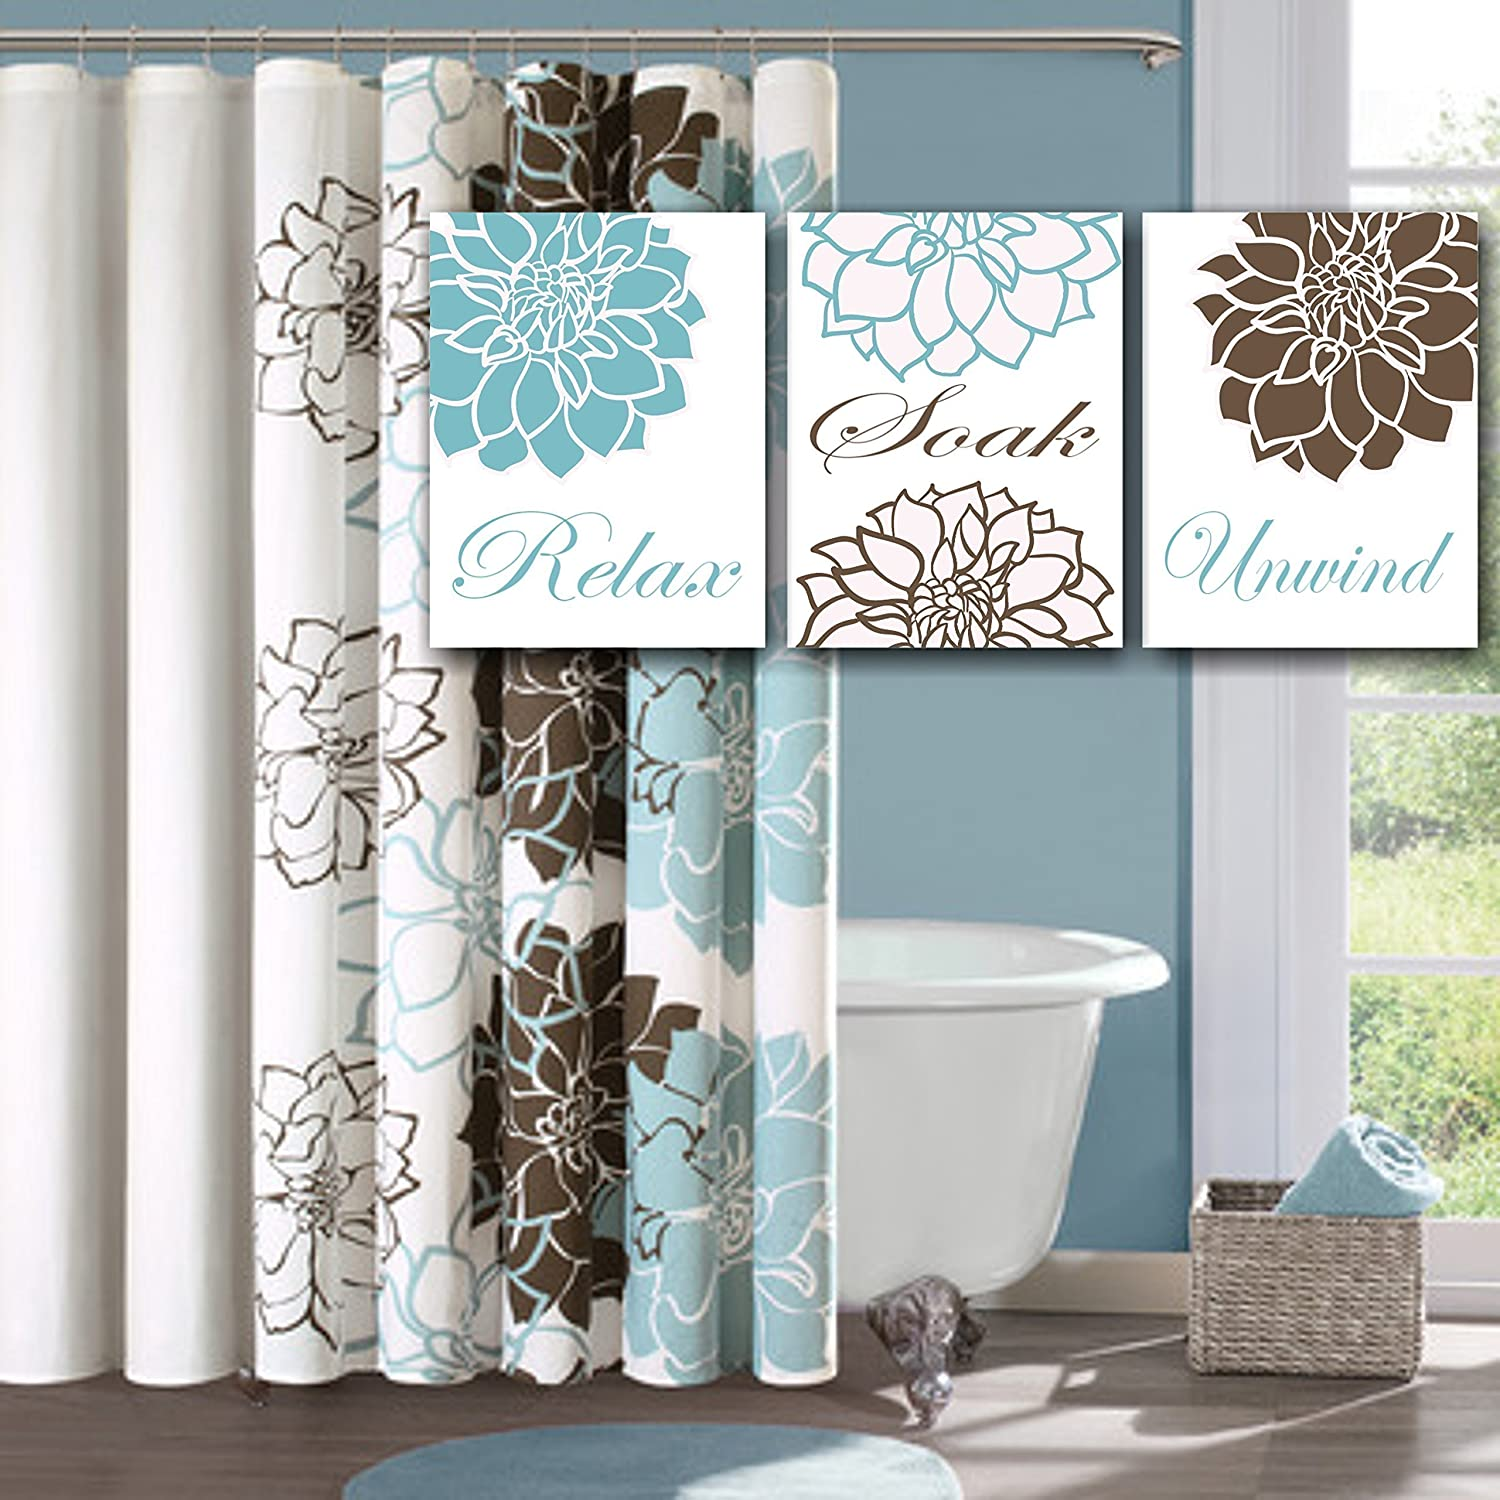 Amazon Com Blue Brown Floral Bathroom Wall Art Teal Brown Bathroom Wall Art Brown Aqua Floral Wall Art Aqua Floral Bathroom Wall Art Unframed Set Of 3